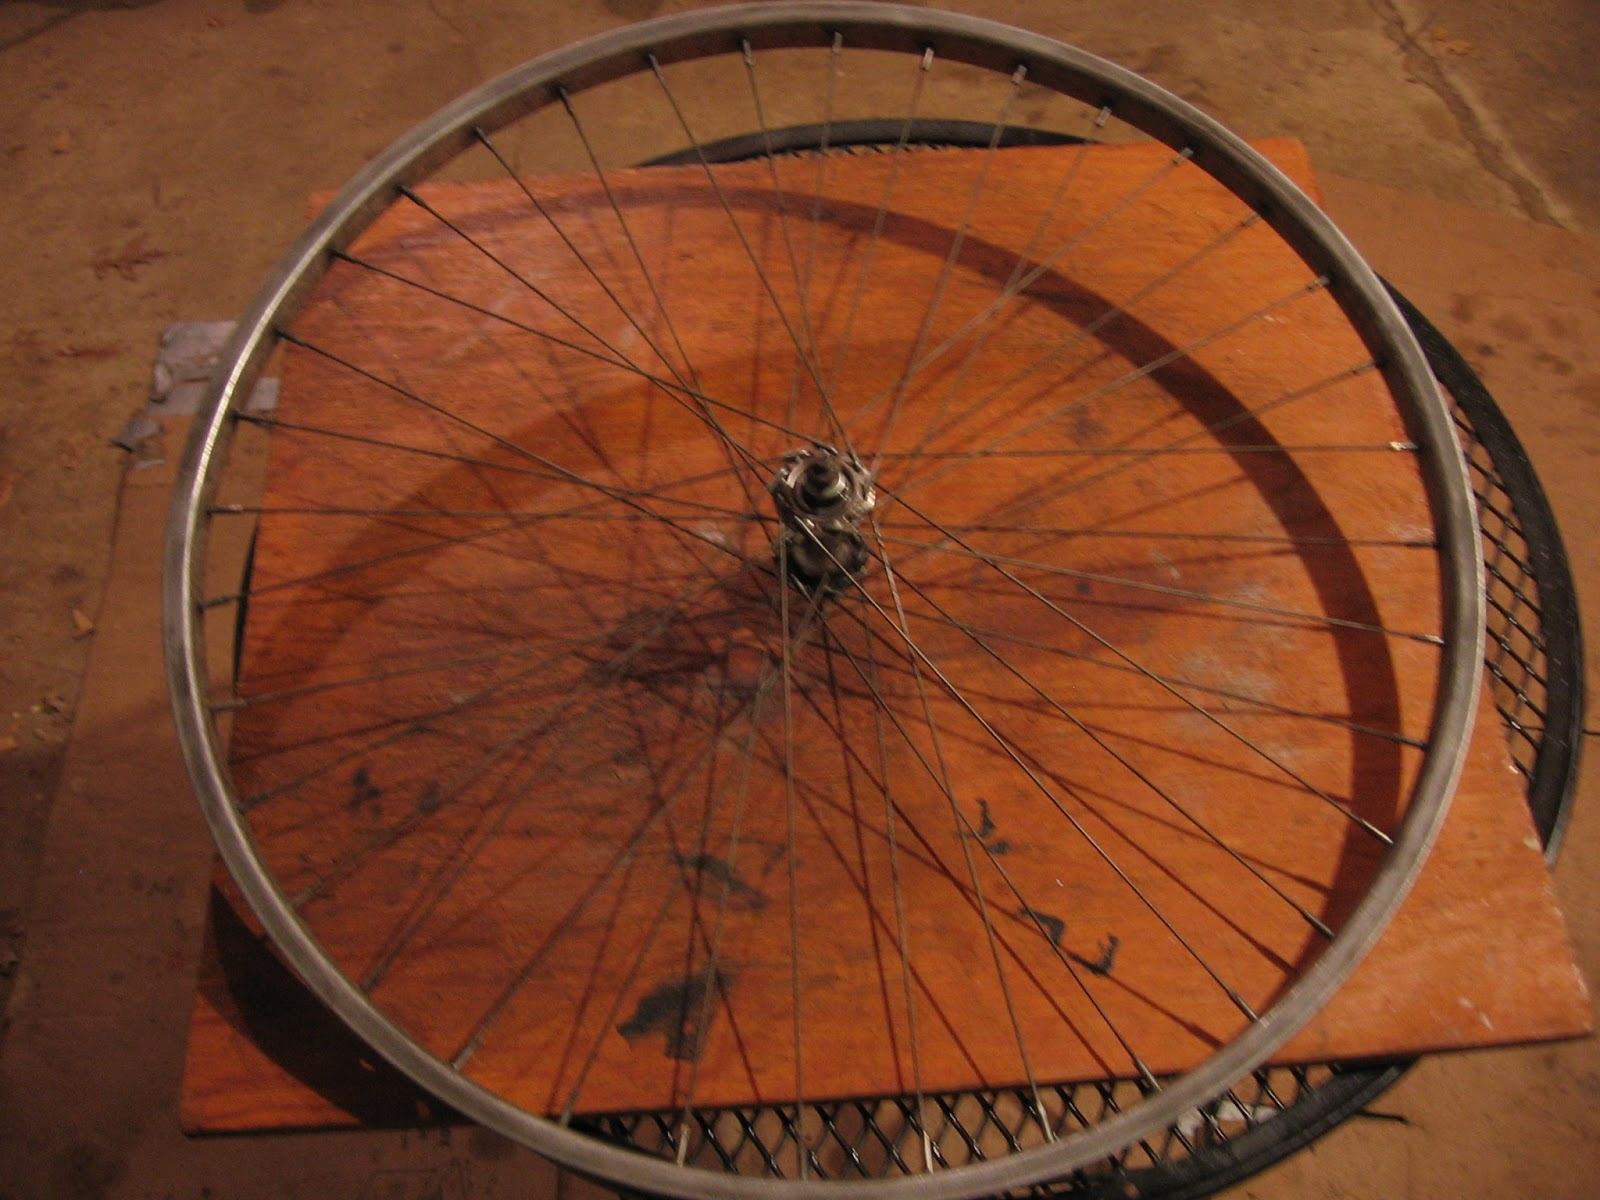 dc862e270af The Bike Shed  Mounting A Tire and Reflector